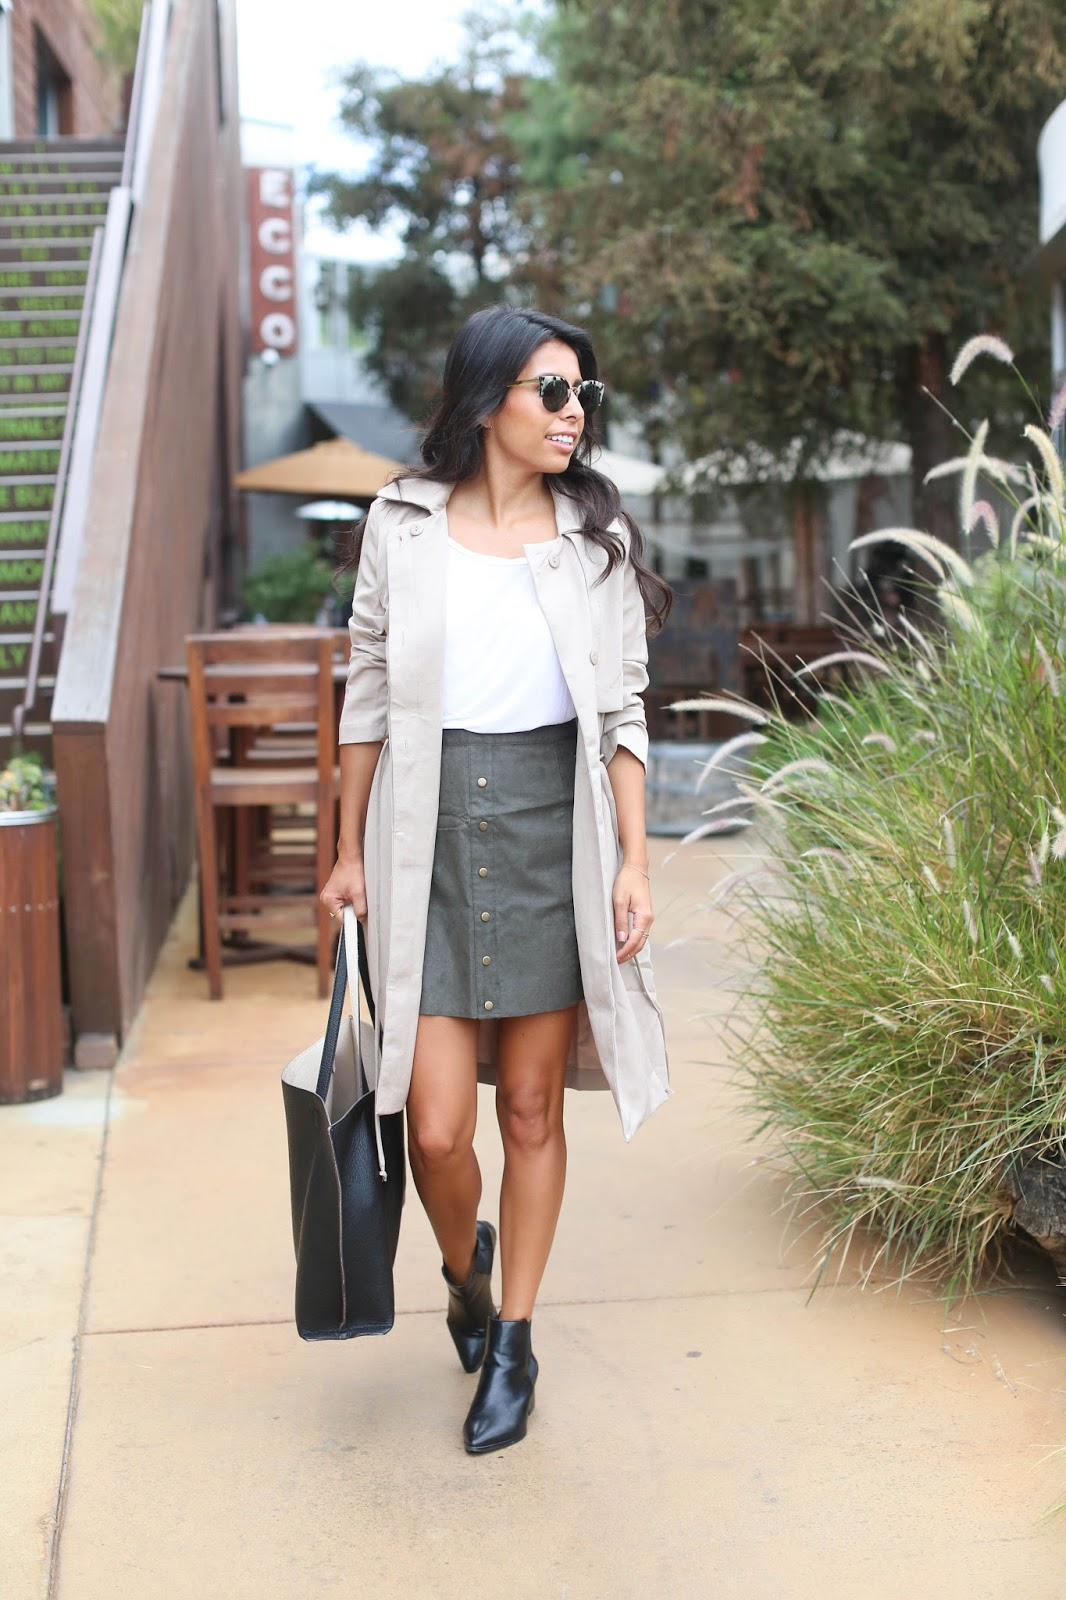 how to wear black booties to work, justfab clothes, trench coat styling